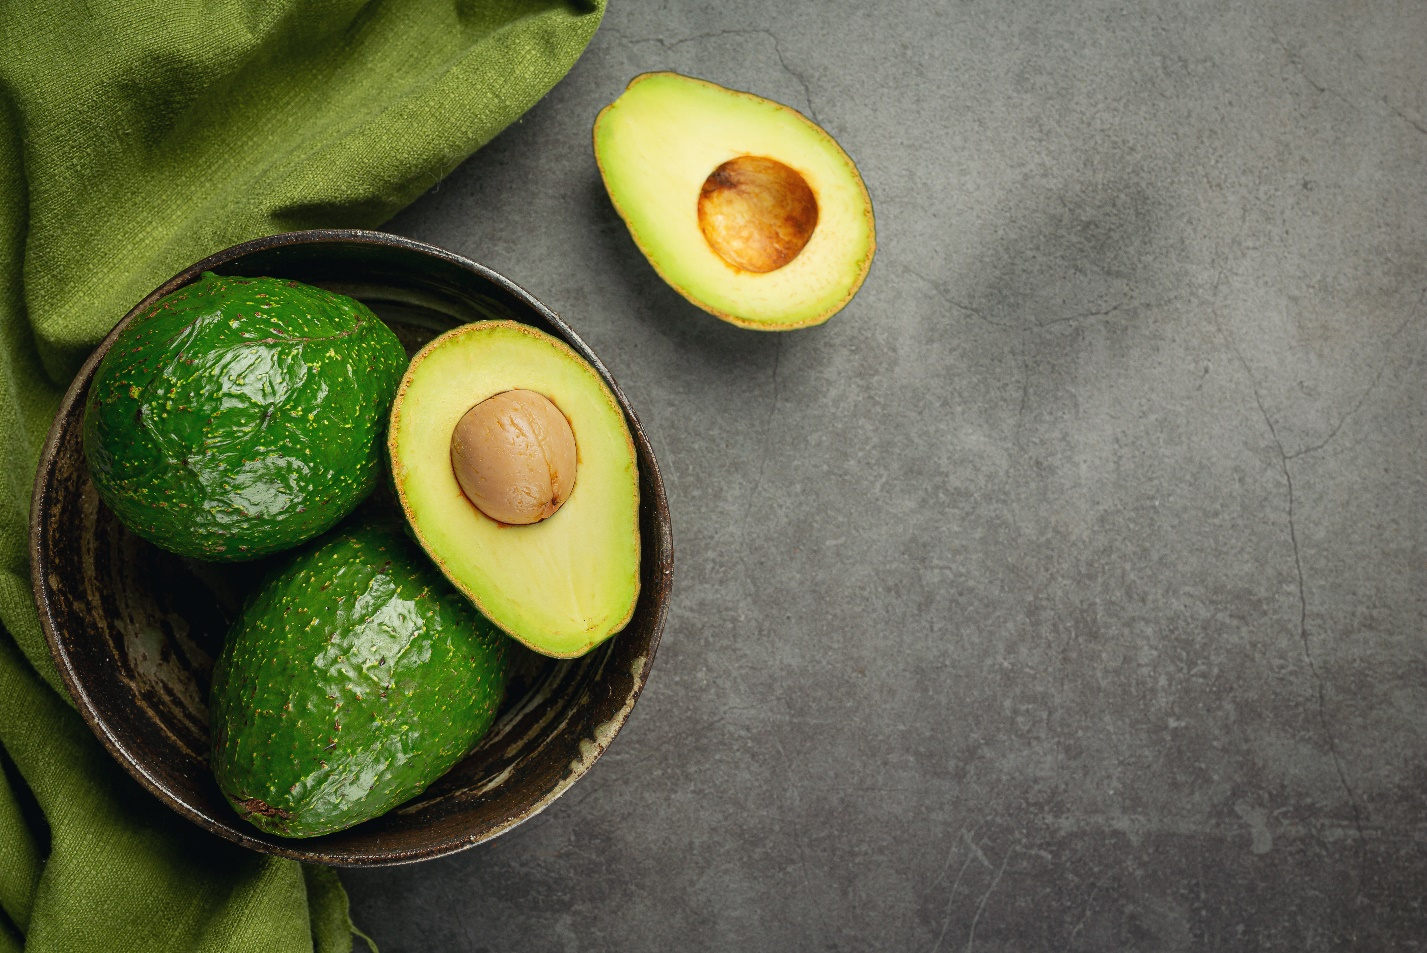 C:\Users\Muhammad Ismail\Downloads\avocado-products-made-from-avocados-food-nutrition-concept.jpg